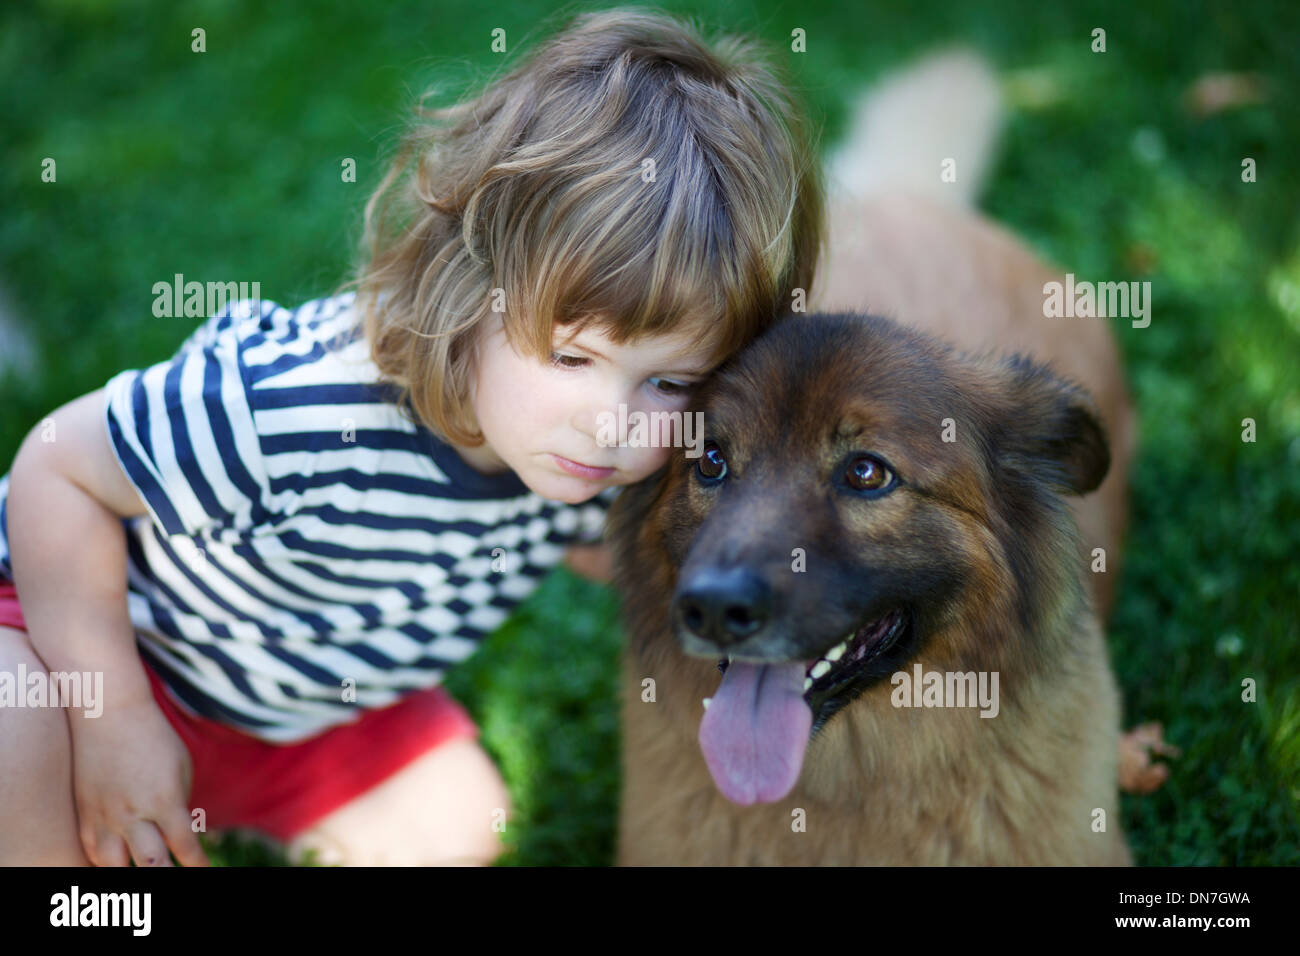 Little boy cuddles with dog - Stock Image